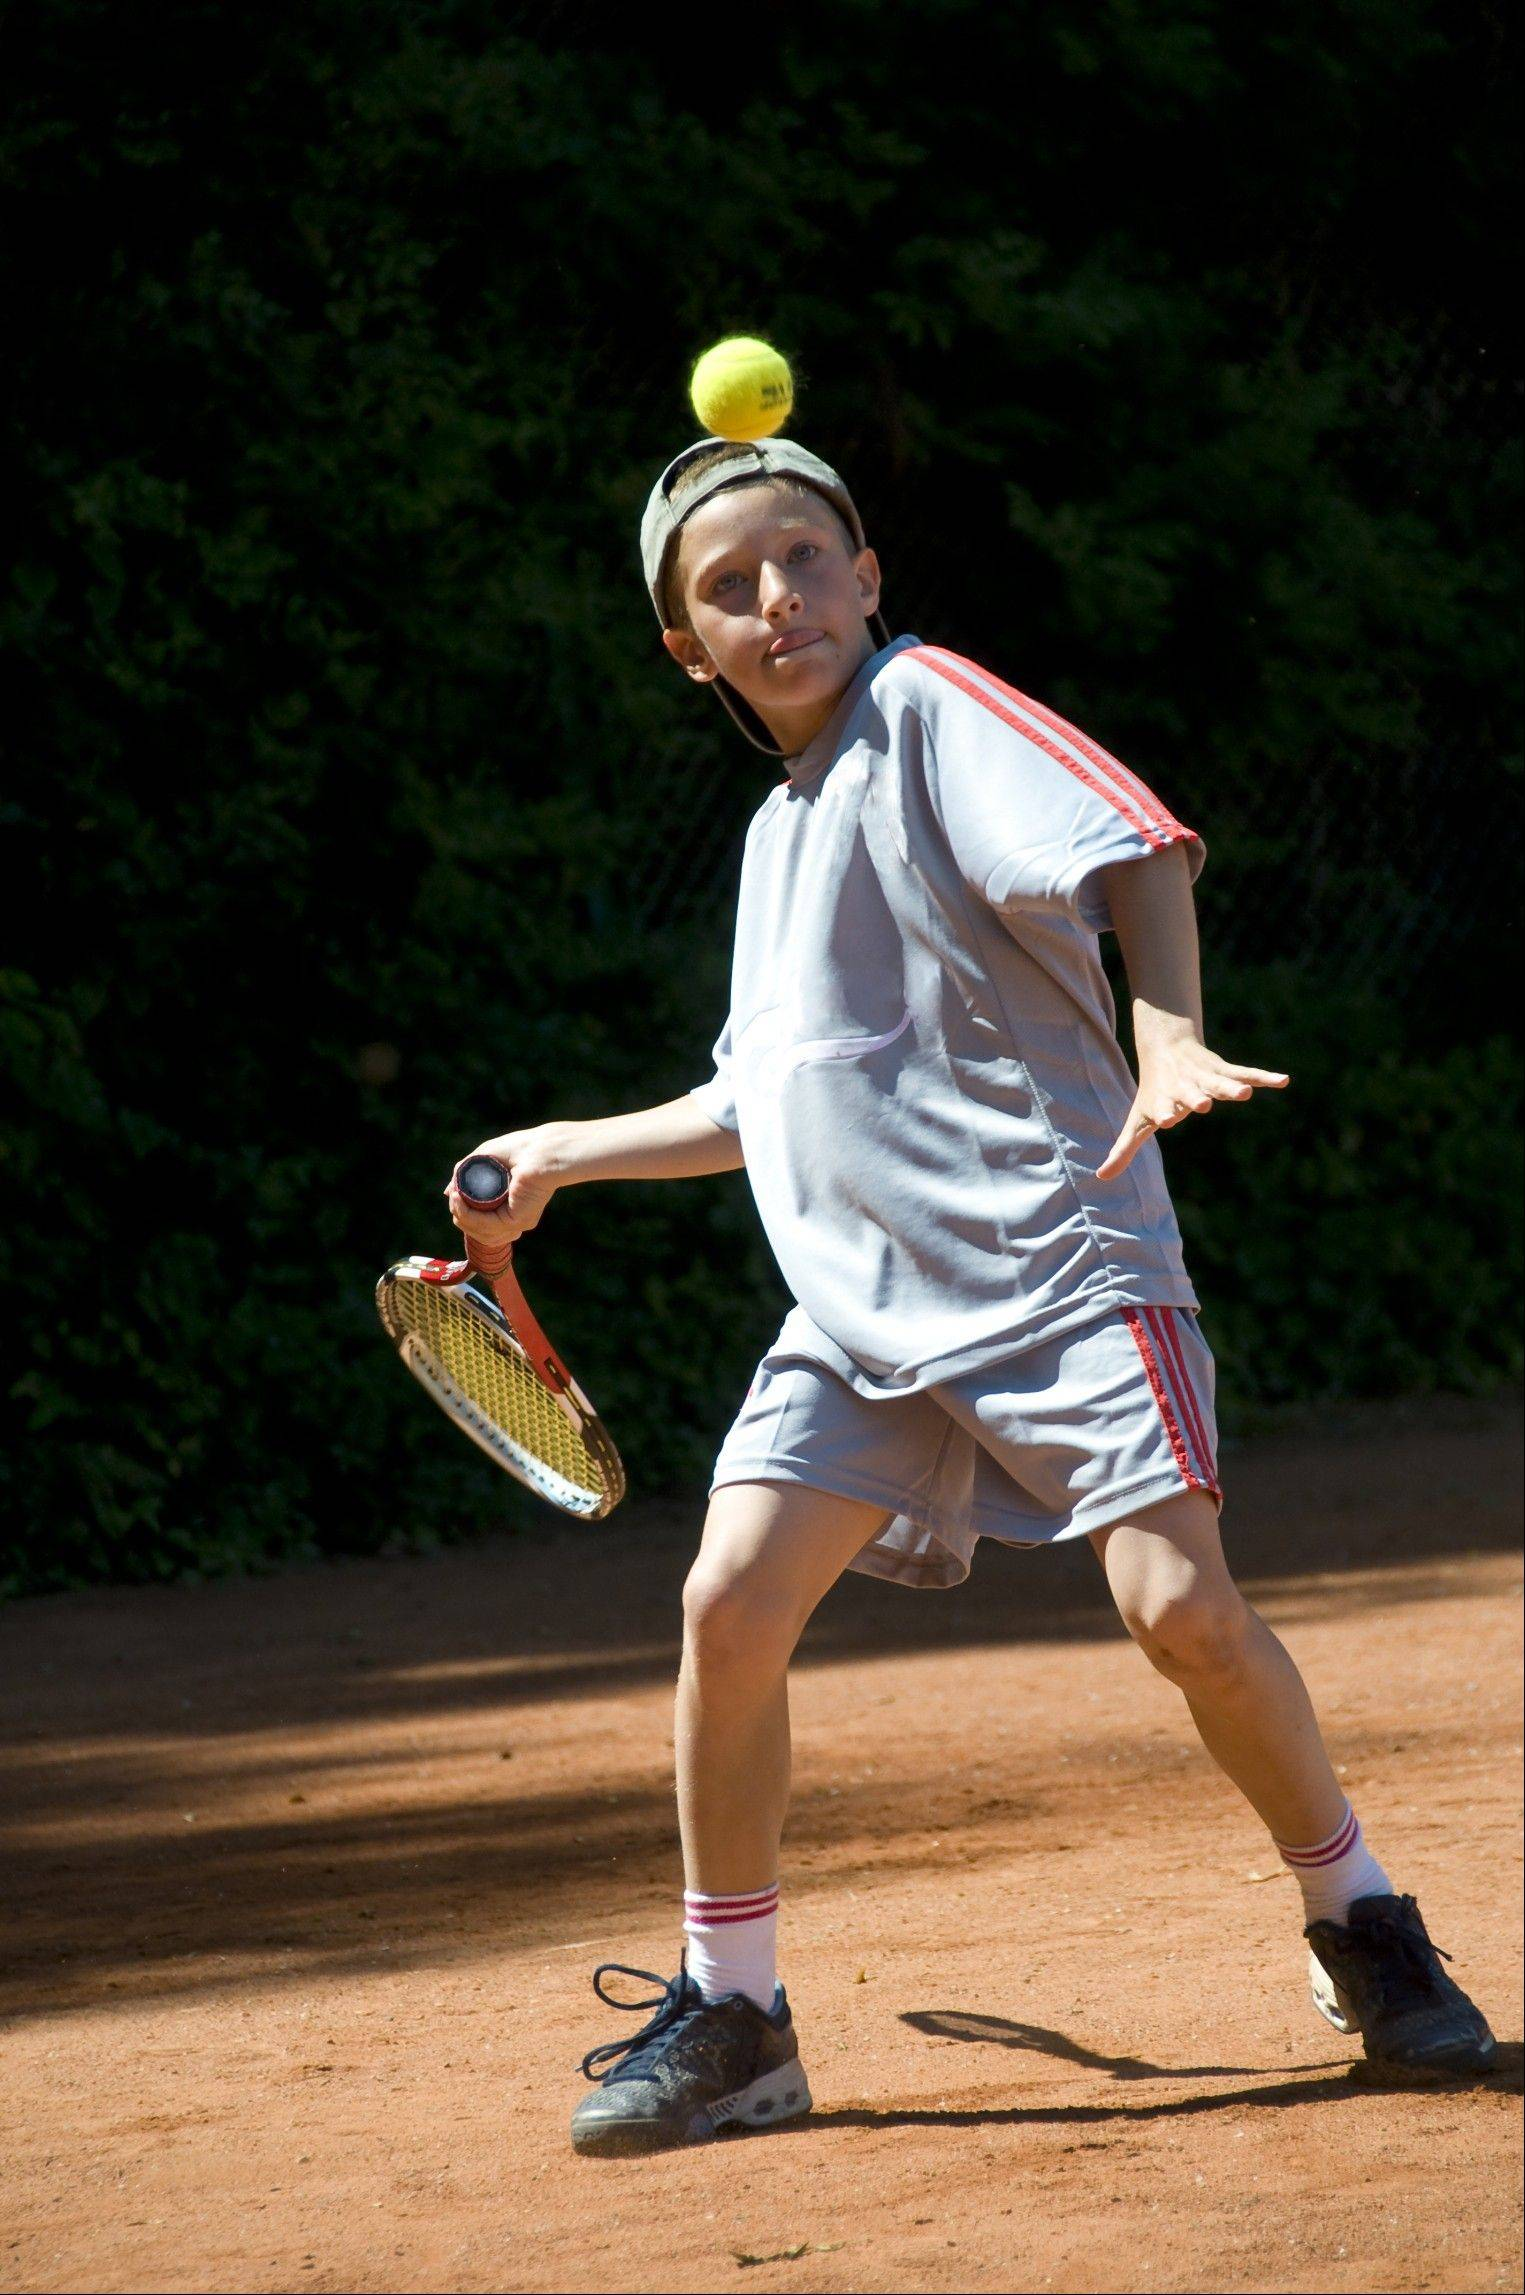 There are new efforts to introduce younger children to the benefits and fun of tennis.